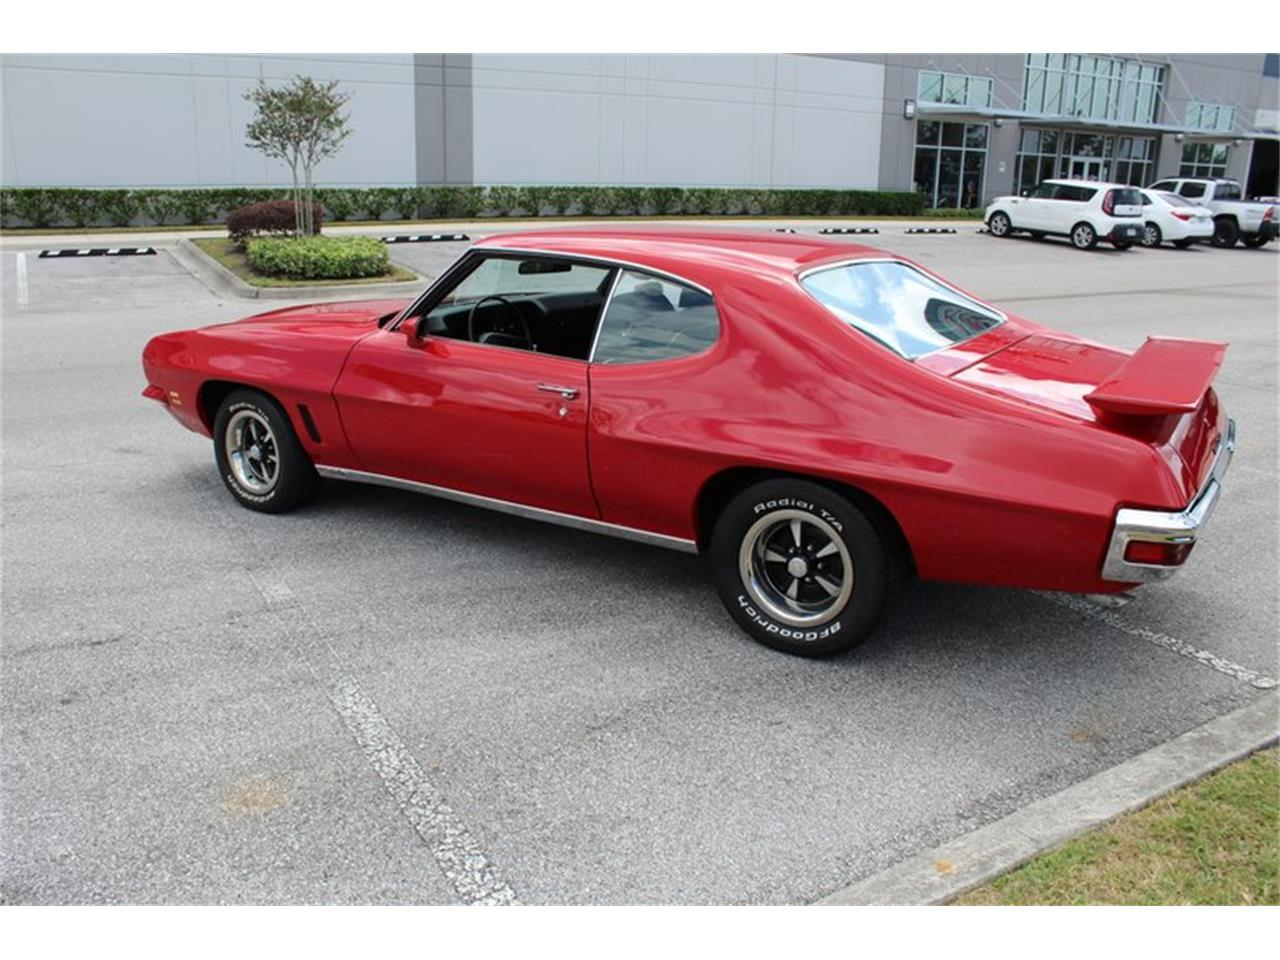 Large Picture of '72 Pontiac LeMans located in Florida - $19,500.00 Offered by Classic Cars of Sarasota - PUAK